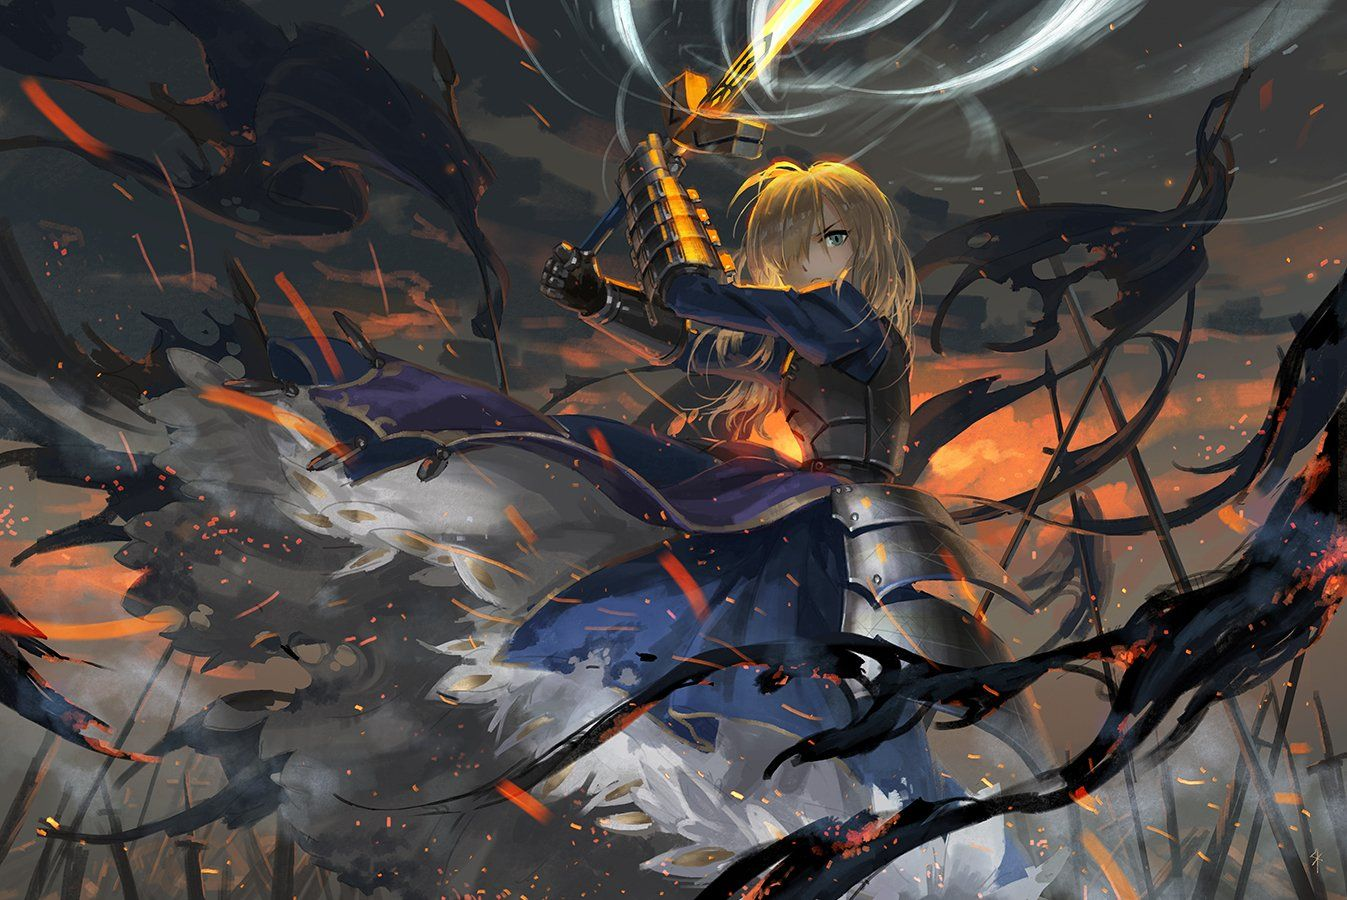 Anime Fate Stay Night Woman Warrior Saber Fate Series Sword Blonde Excalibur Woman Armor Wallpaper Fate Stay Night Fate Stay Night Anime Fate Stay Saber Wallpaper anime fate stay saber fate